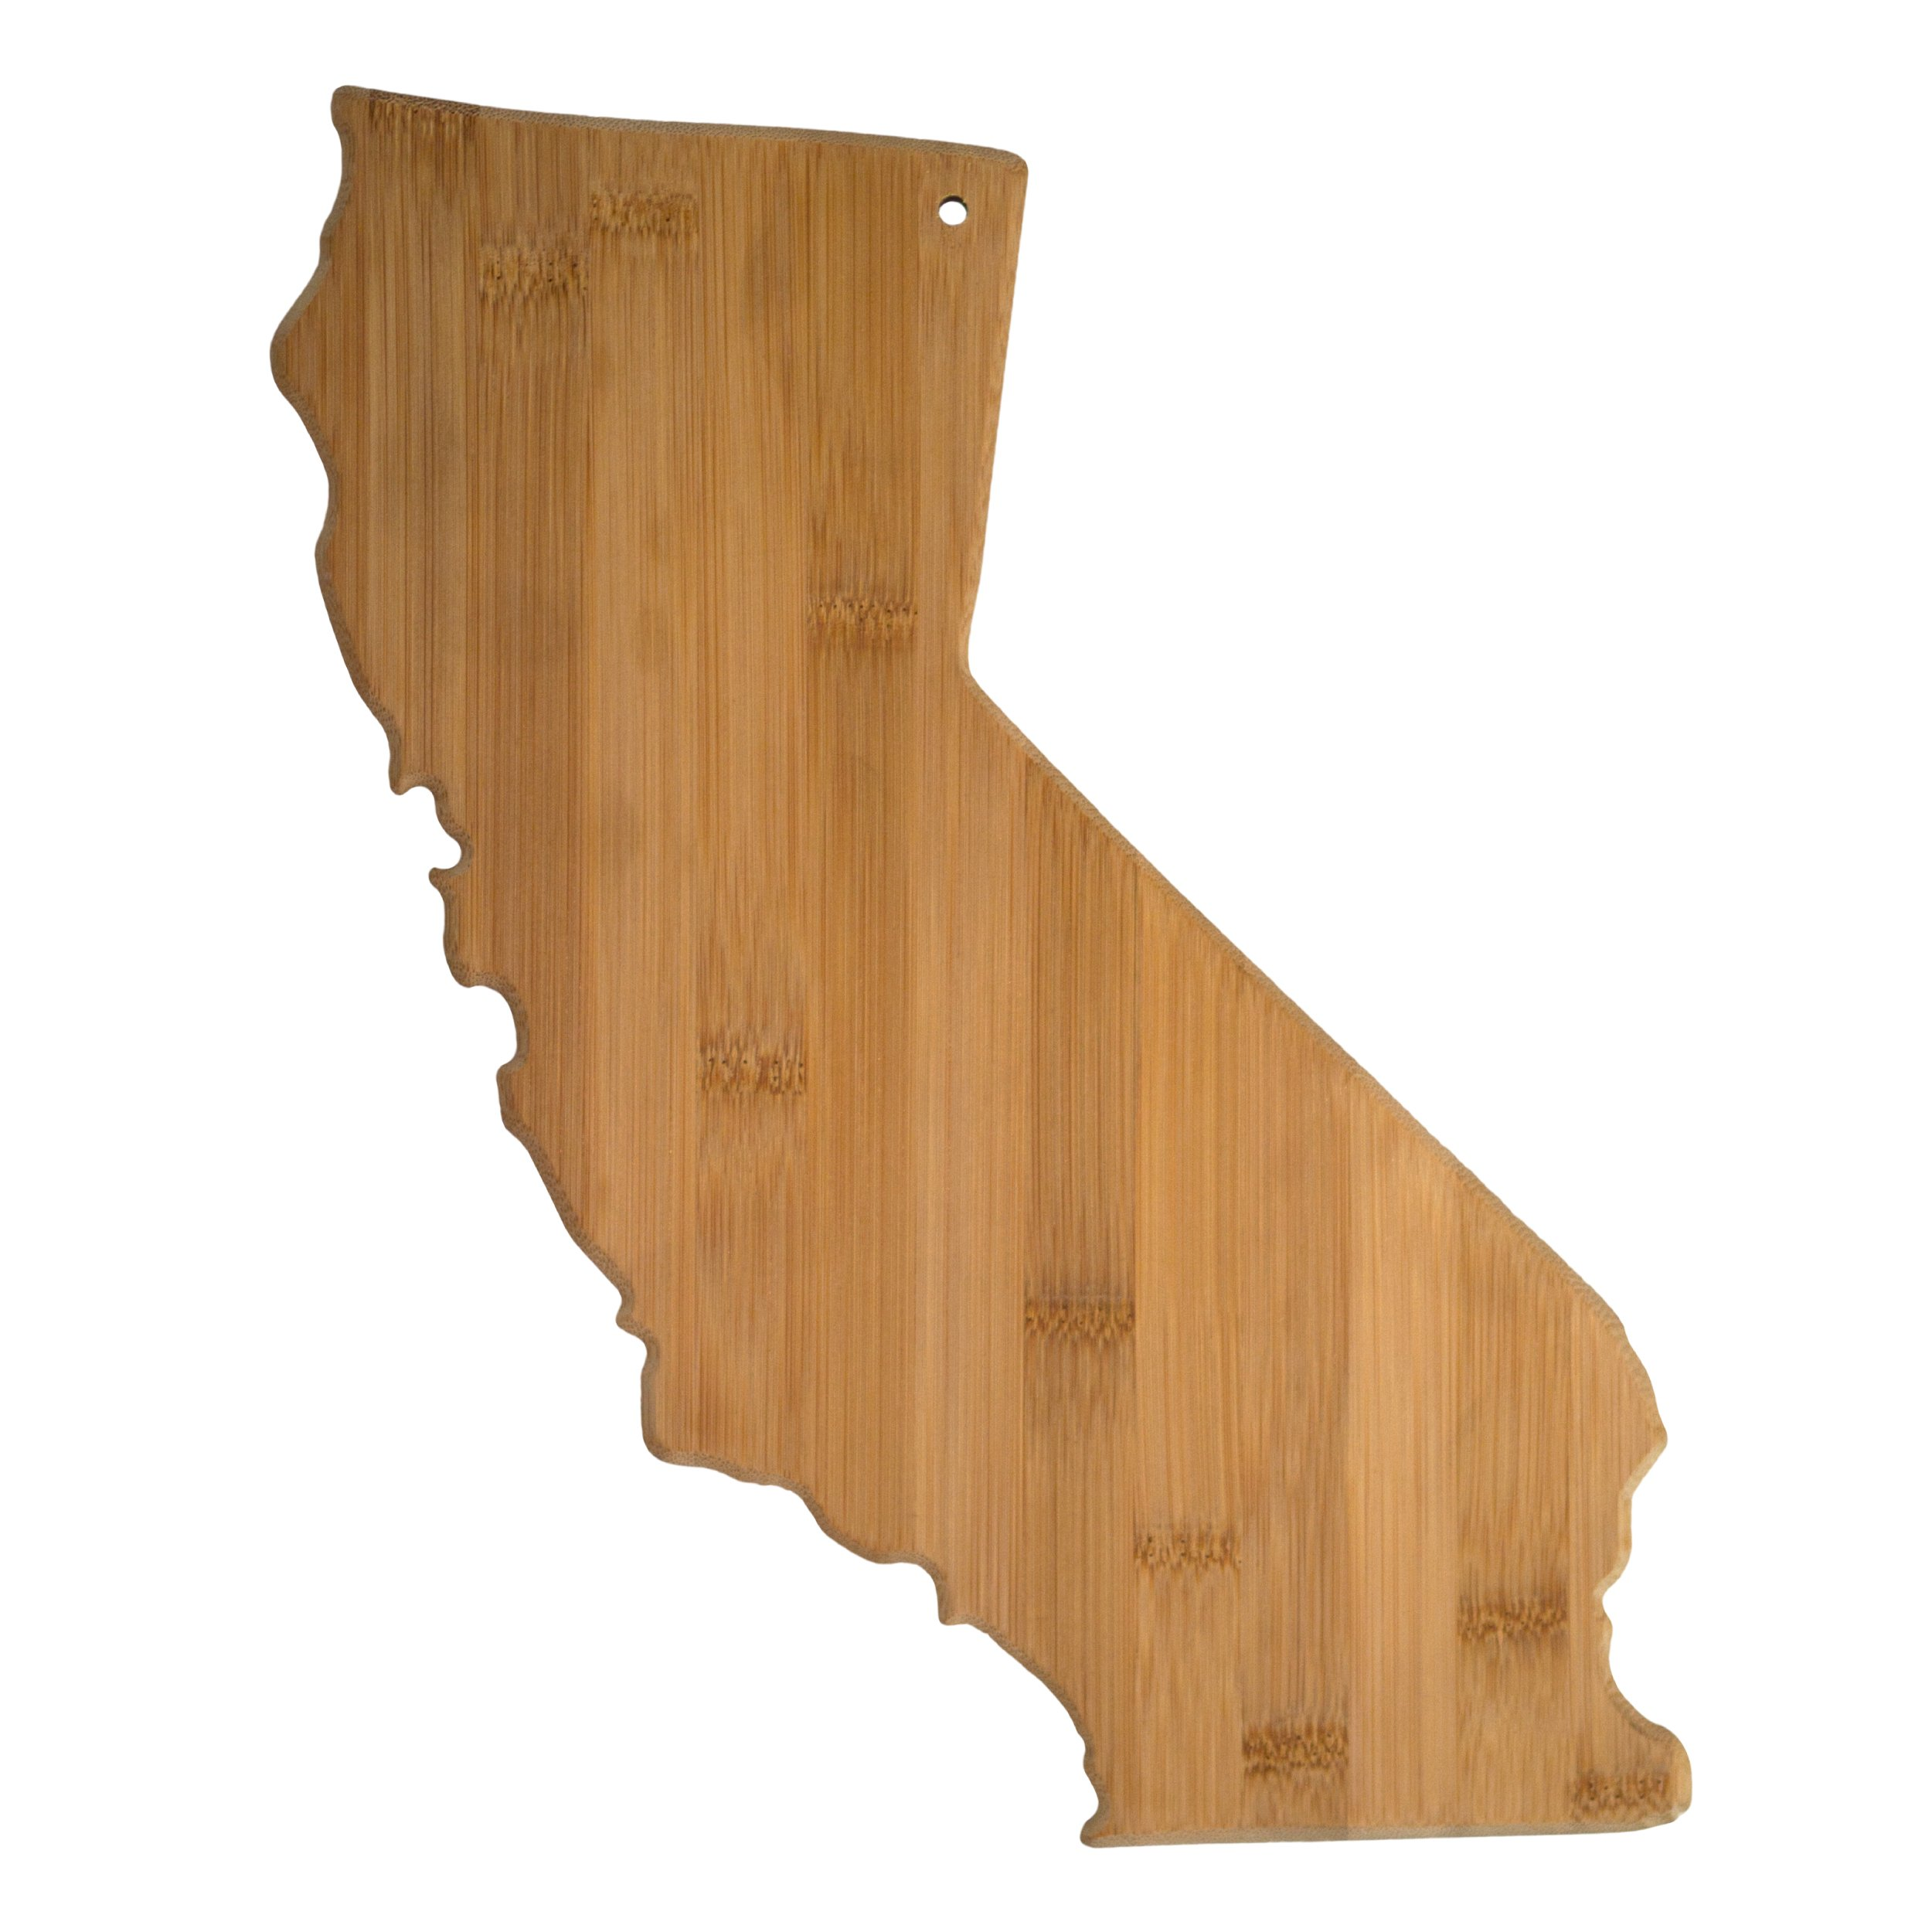 Totally Bamboo California State Shaped Bamboo Serving and Cutting Board by Totally Bamboo (Image #1)